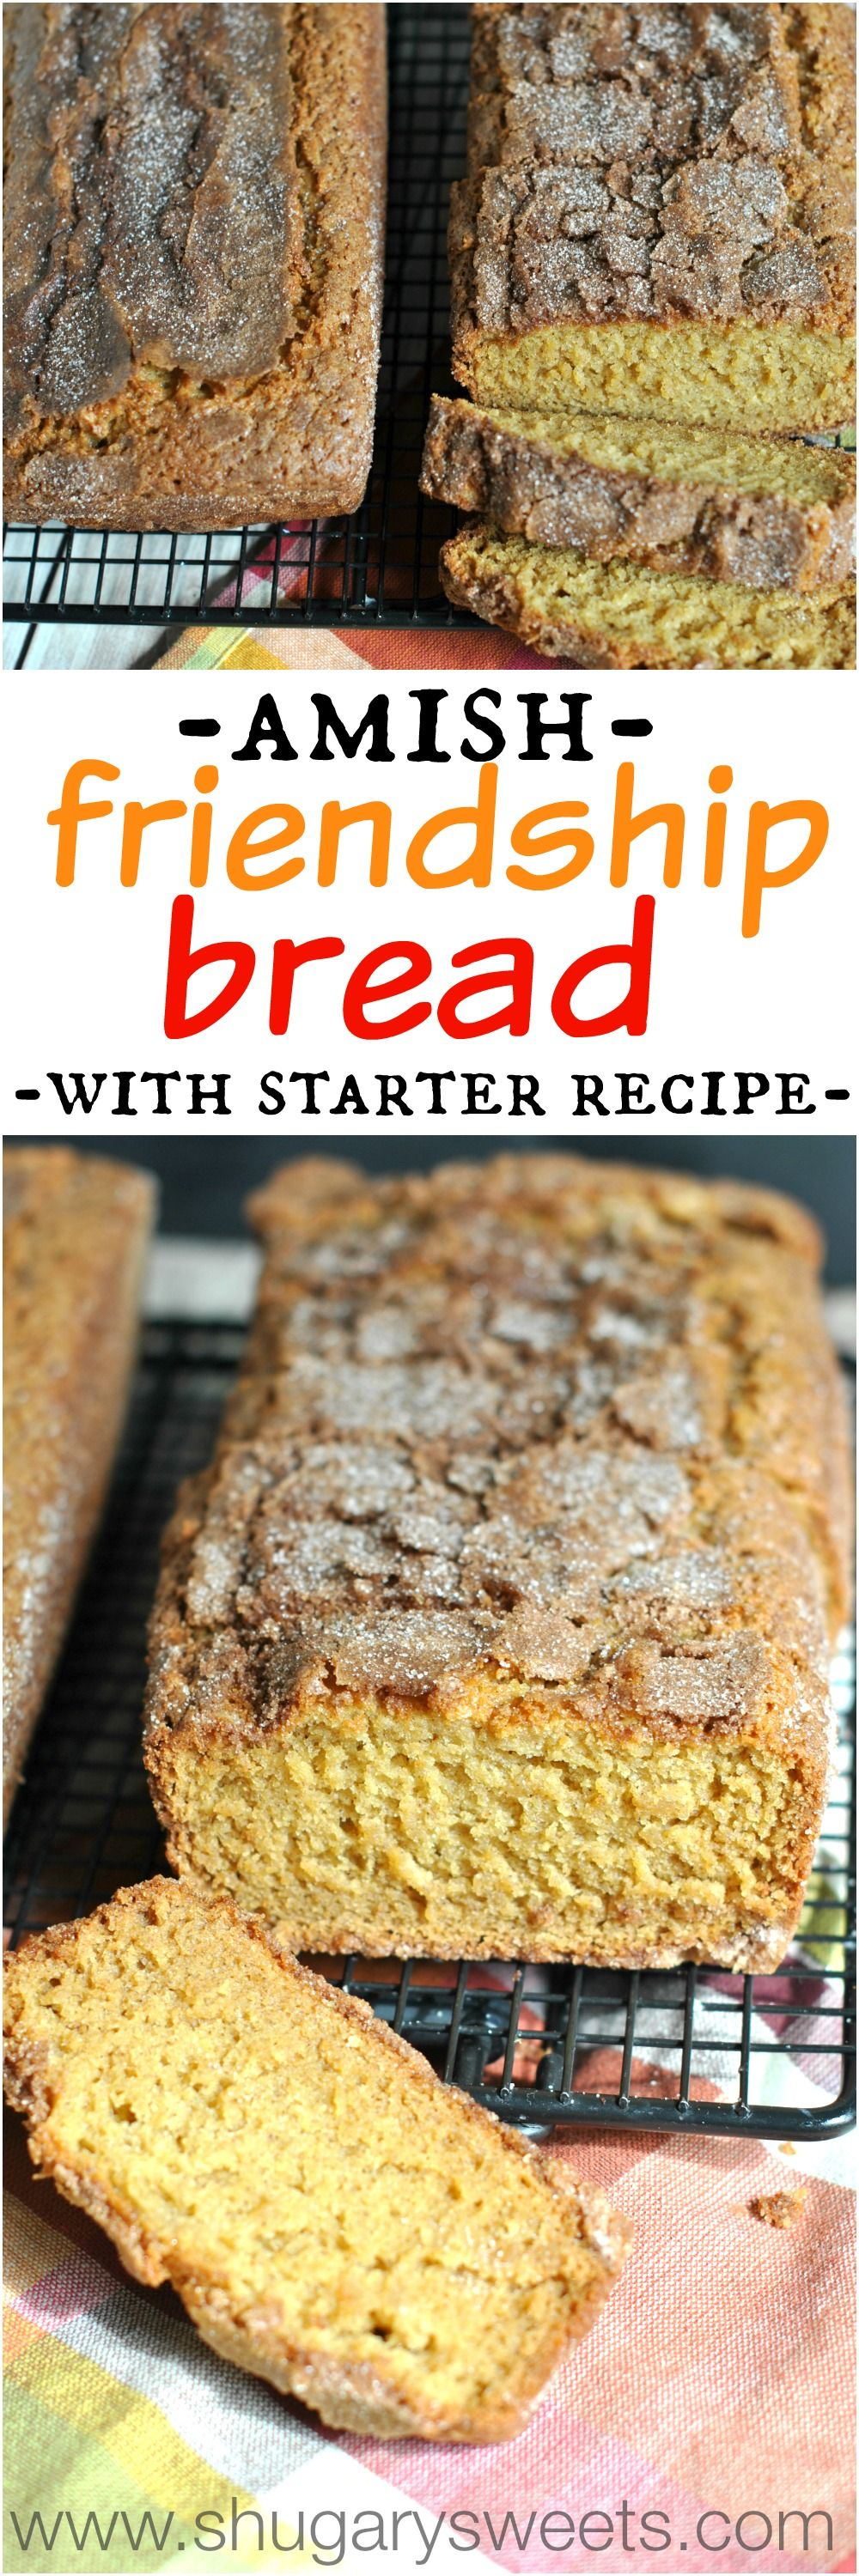 Amish Friendship Bread with starter recipe! Come bake some ...